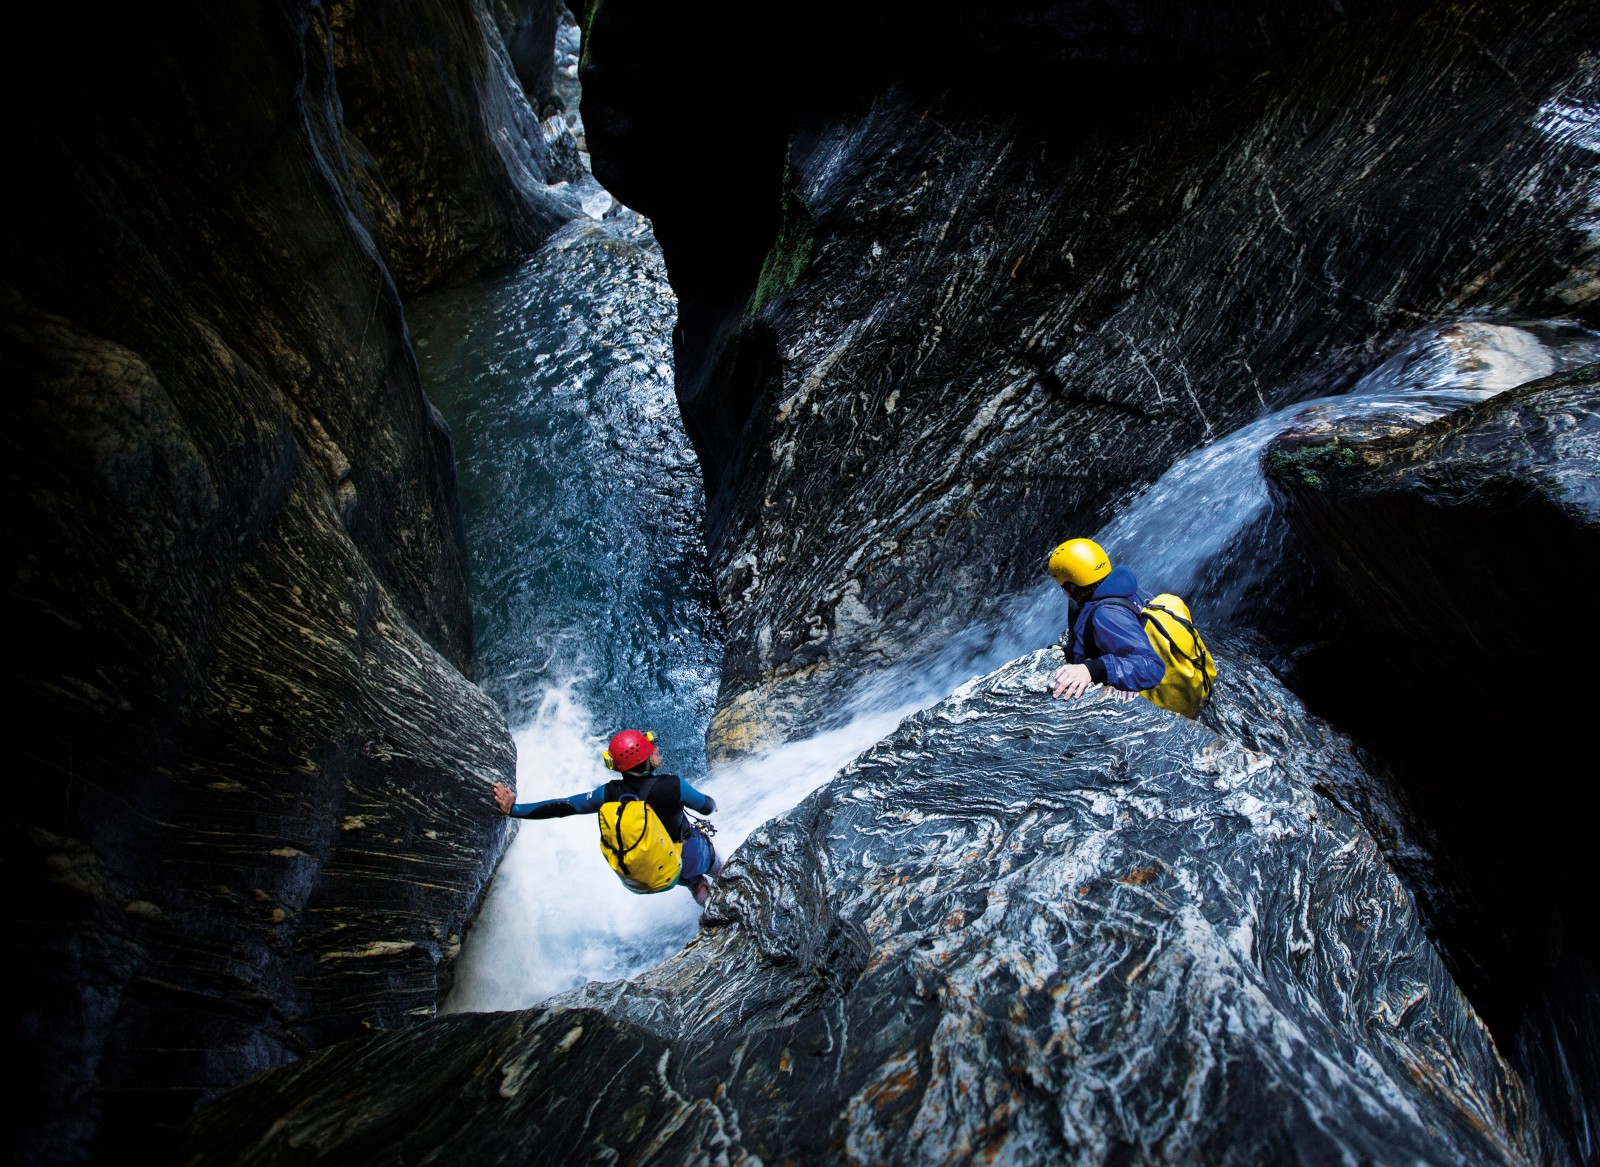 Though canyoning requires individual skills, teamwork is essential. Annette Phillips (below right) contemplates the next phase of the canyon at Wilson Creek with Alain Rohr. The pair have been involved in a new phase of exploration that has opened up dozens of canyons around the country over the past five years and made them more accessible to both local and overseas canyoners. The biggest canyons can take a long time to explore—a team of 10 French canyoners took five days to explore Gloomy Gorge canyon in sections, progressing as little as 100 metres a day in places.